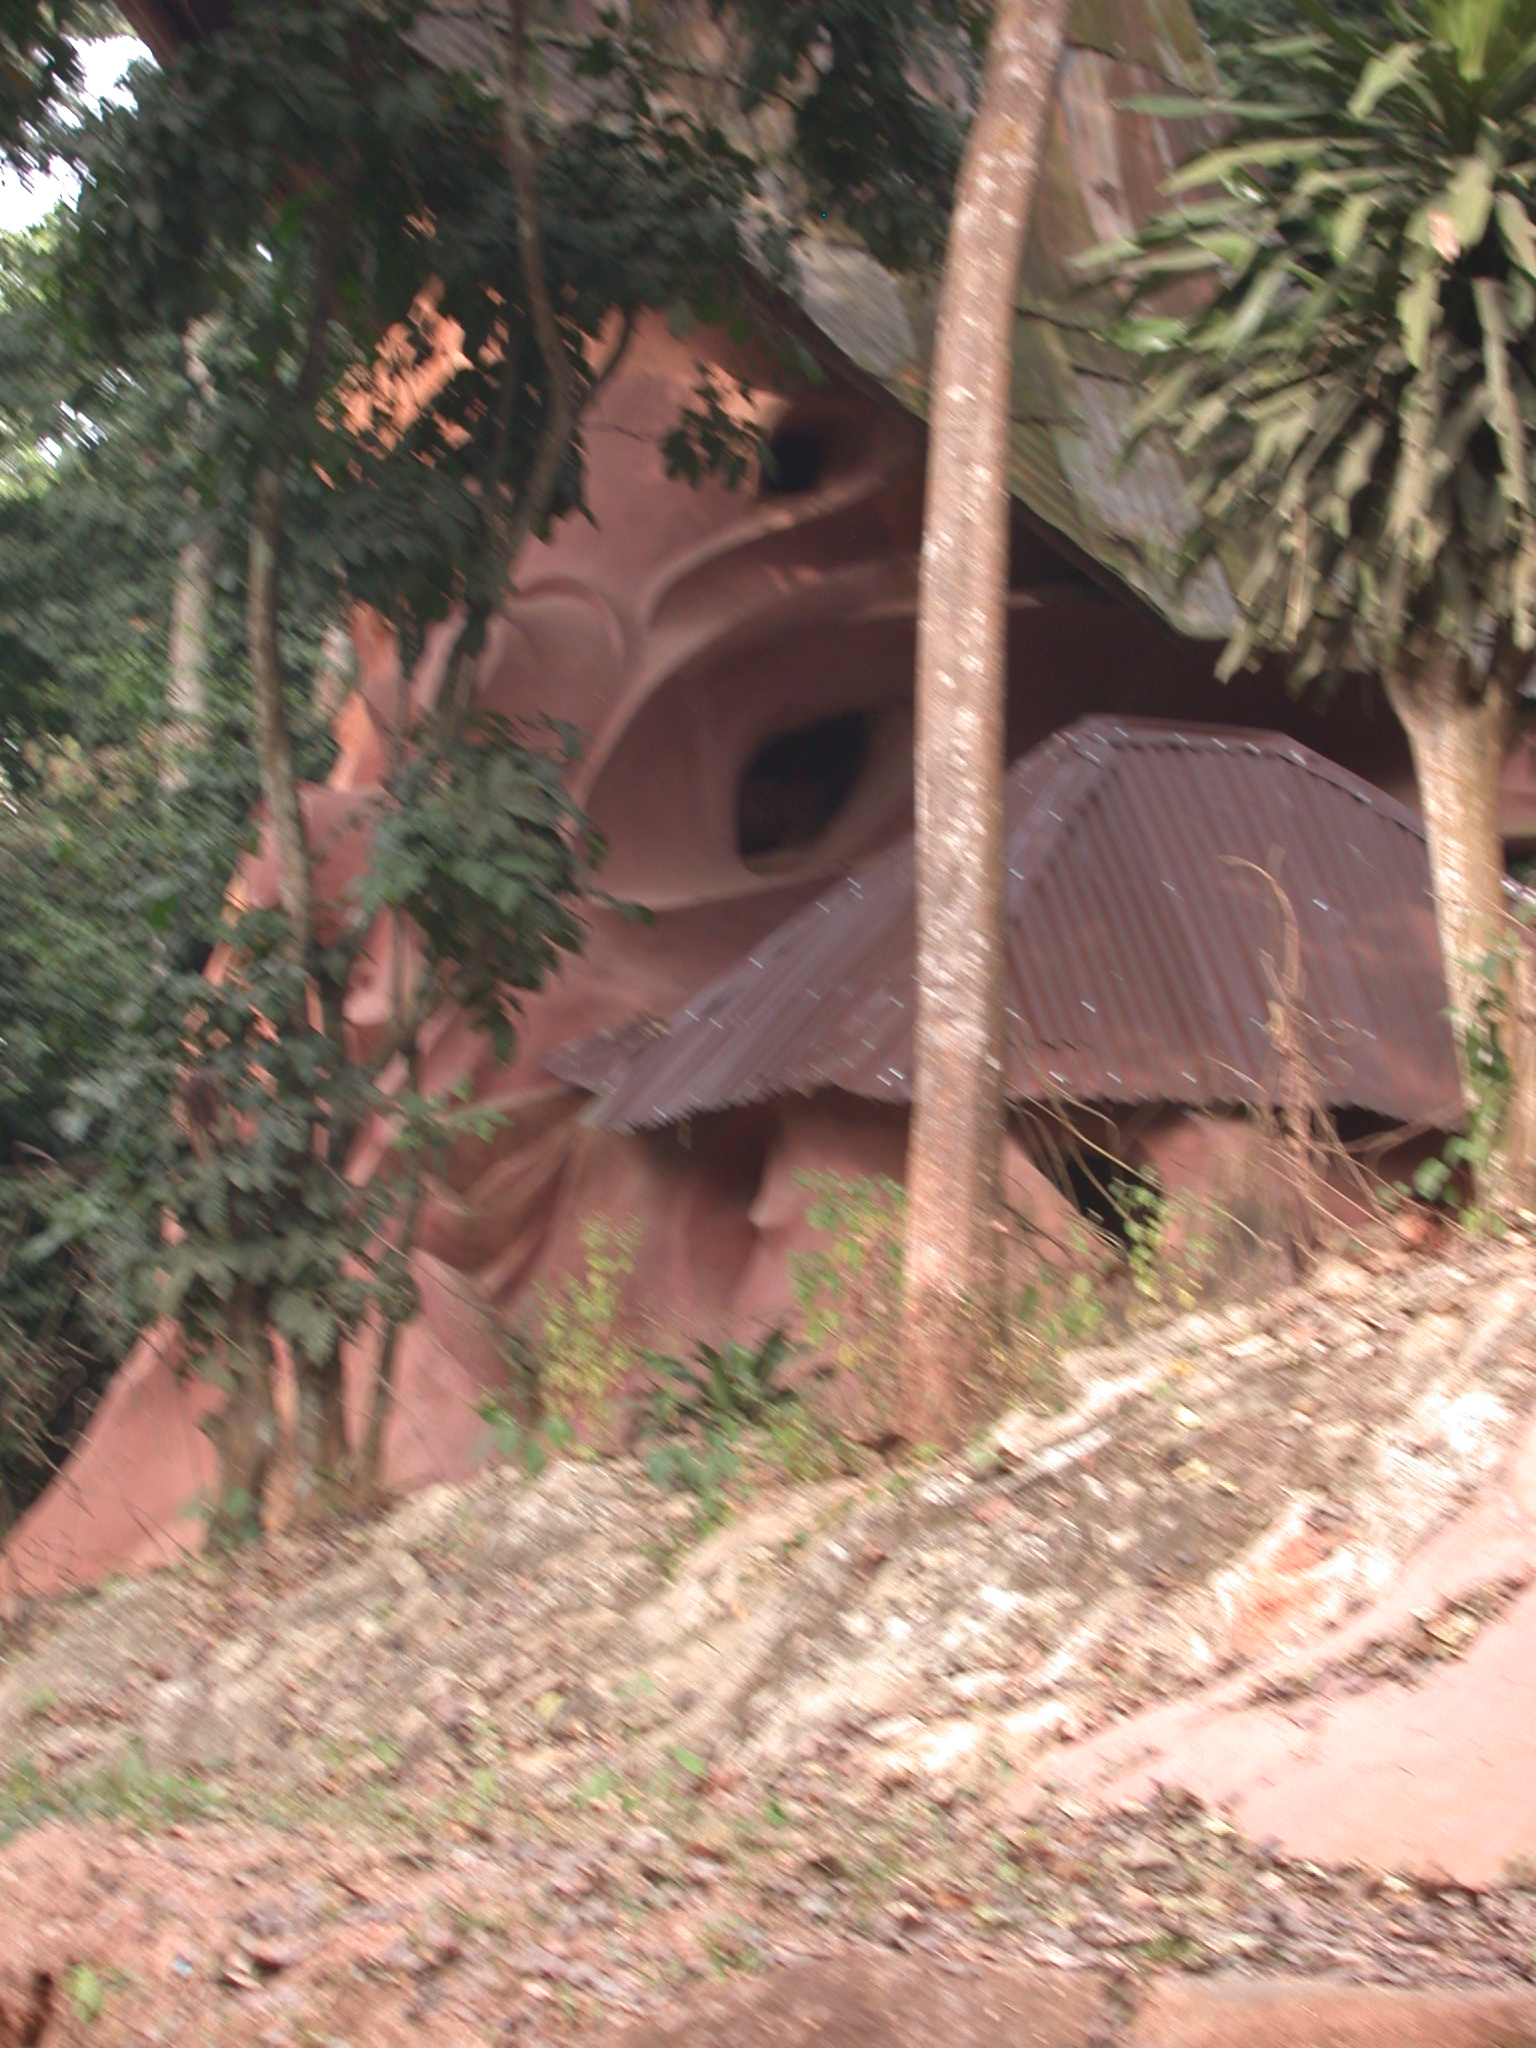 Artisanal Building on Access Road, Osun Sacred Grove, Oshogbo, Nigeria